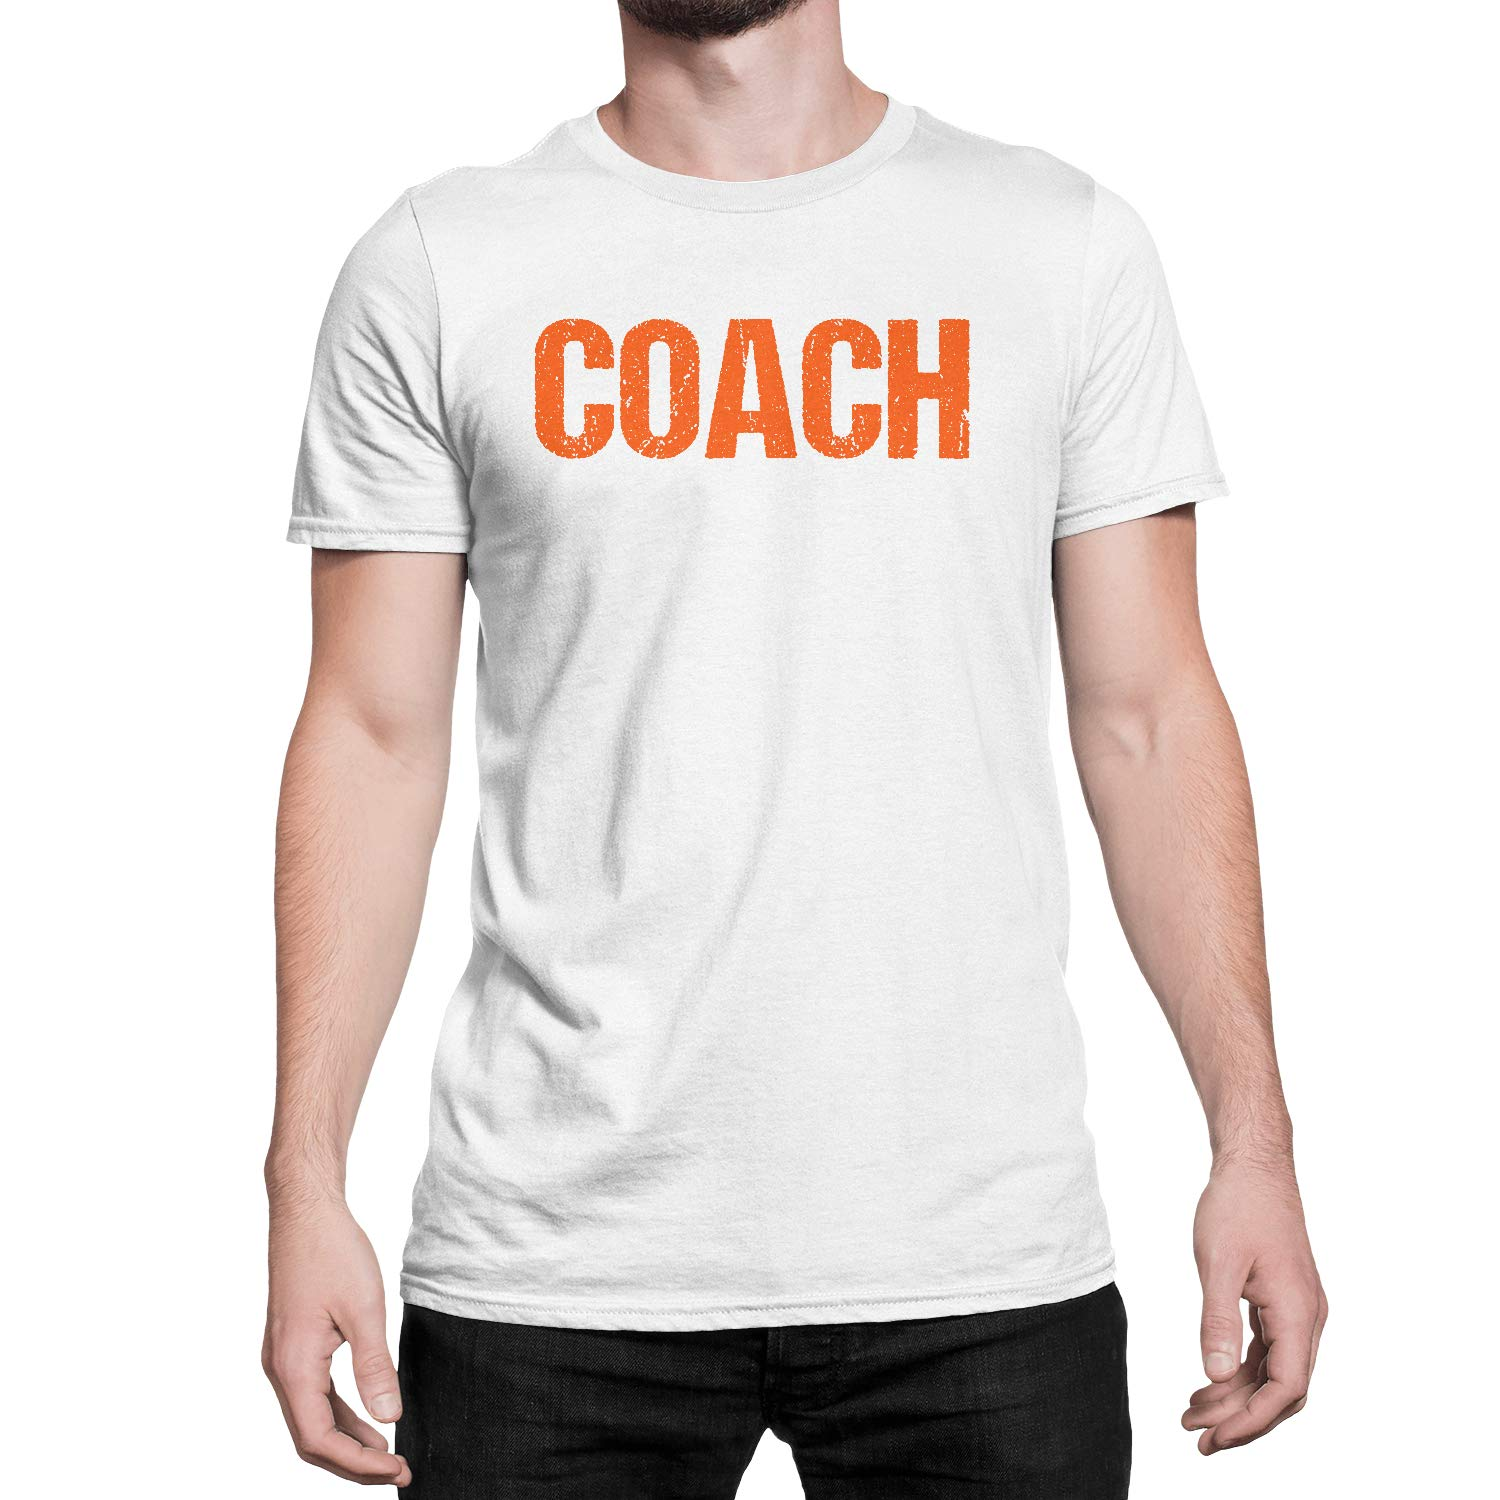 d7c115ac Designed & Screen-Printed in New Jersey, USA Lots of team color  combinations to choose from. COACH printed in bold and distressed letters